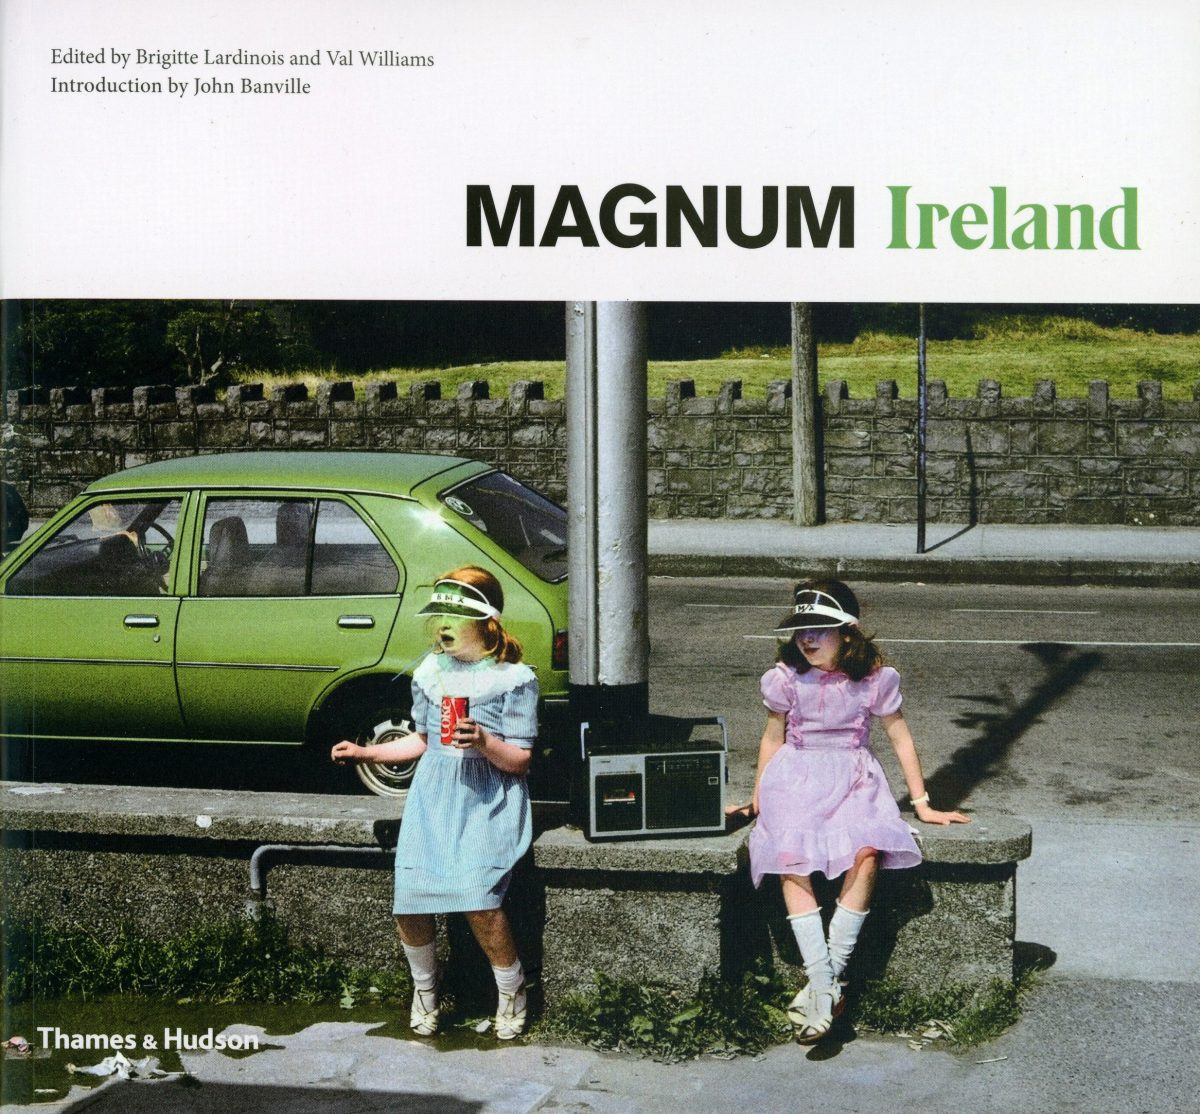 Magnum Ireland: compact paperback format published March 2020